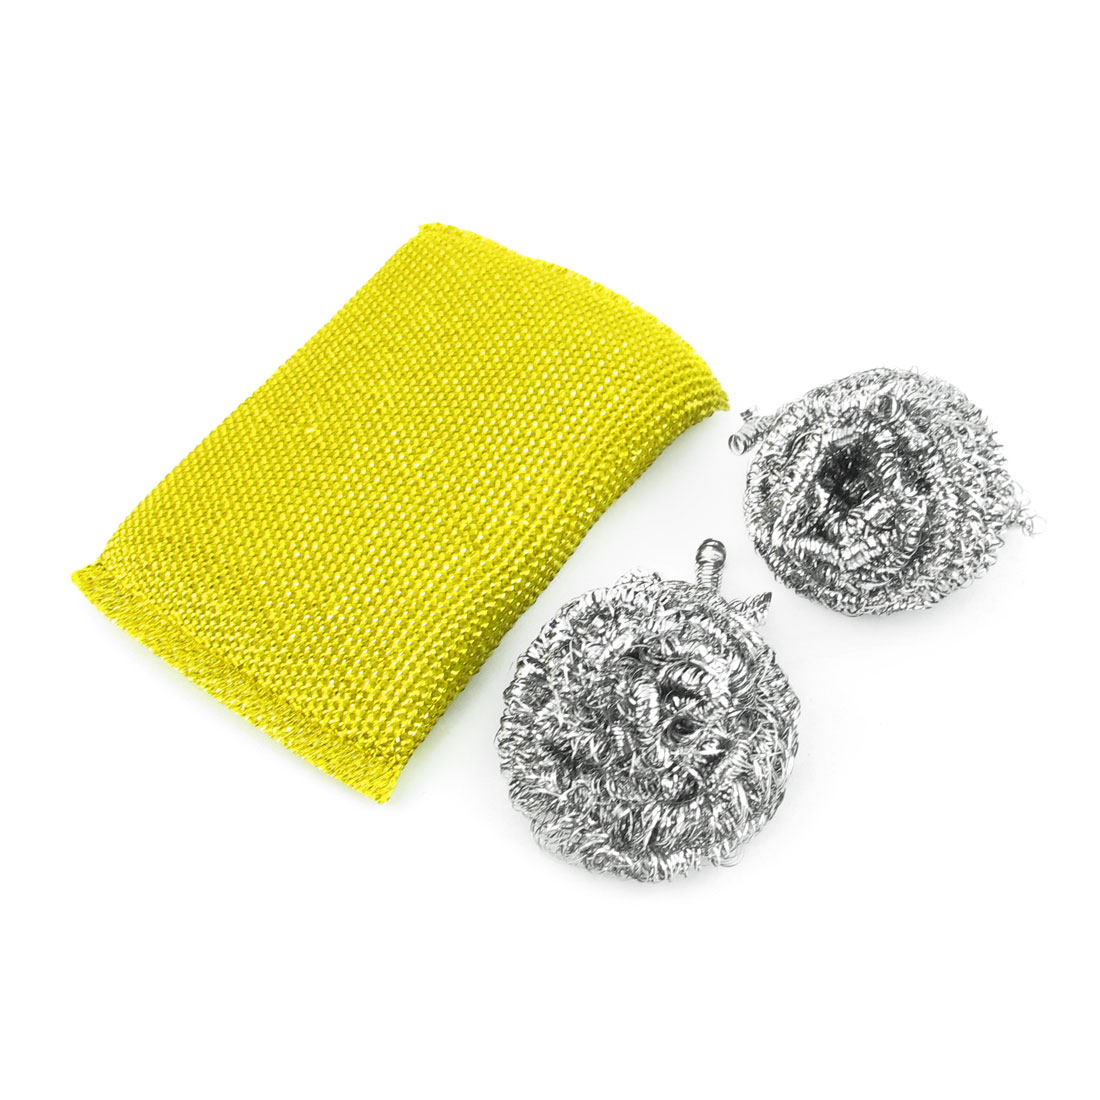 Household Kitchenware Stainless Steel Scrubber Sponge Pad Cleaning Tool Set 3 in 1